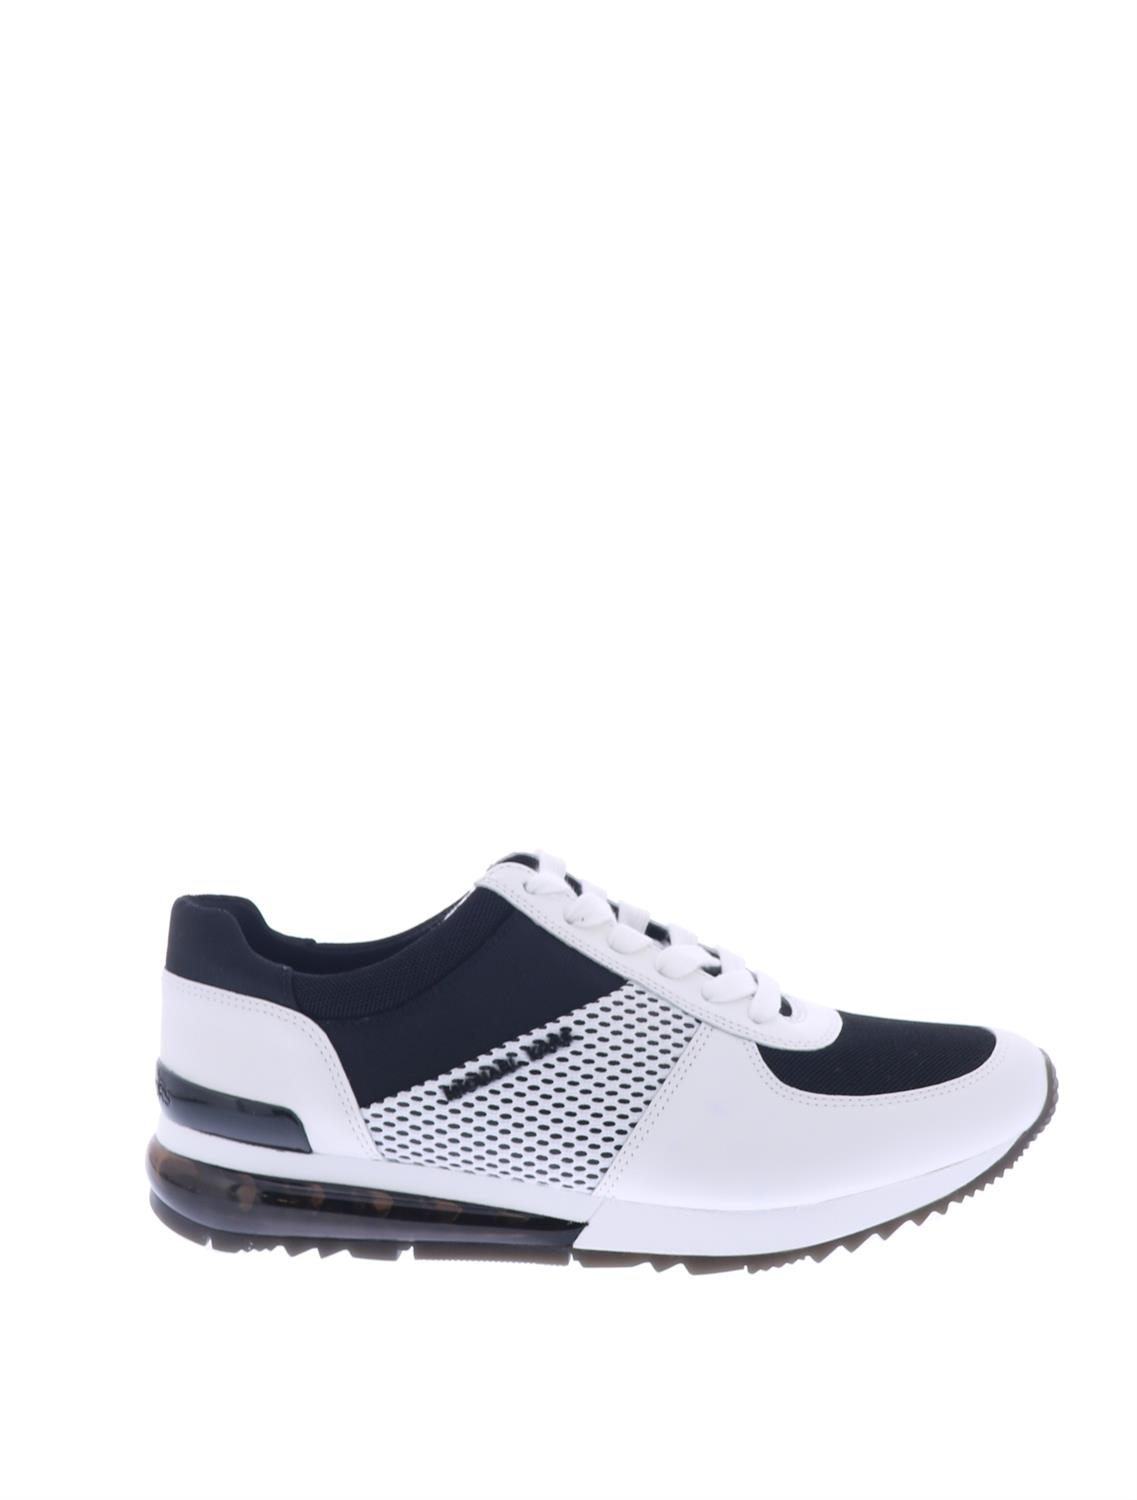 053ce4433ac < Vorige pagina | Home / Sneakers / Michael Kors Allie Trainer Ext Black Optic  White